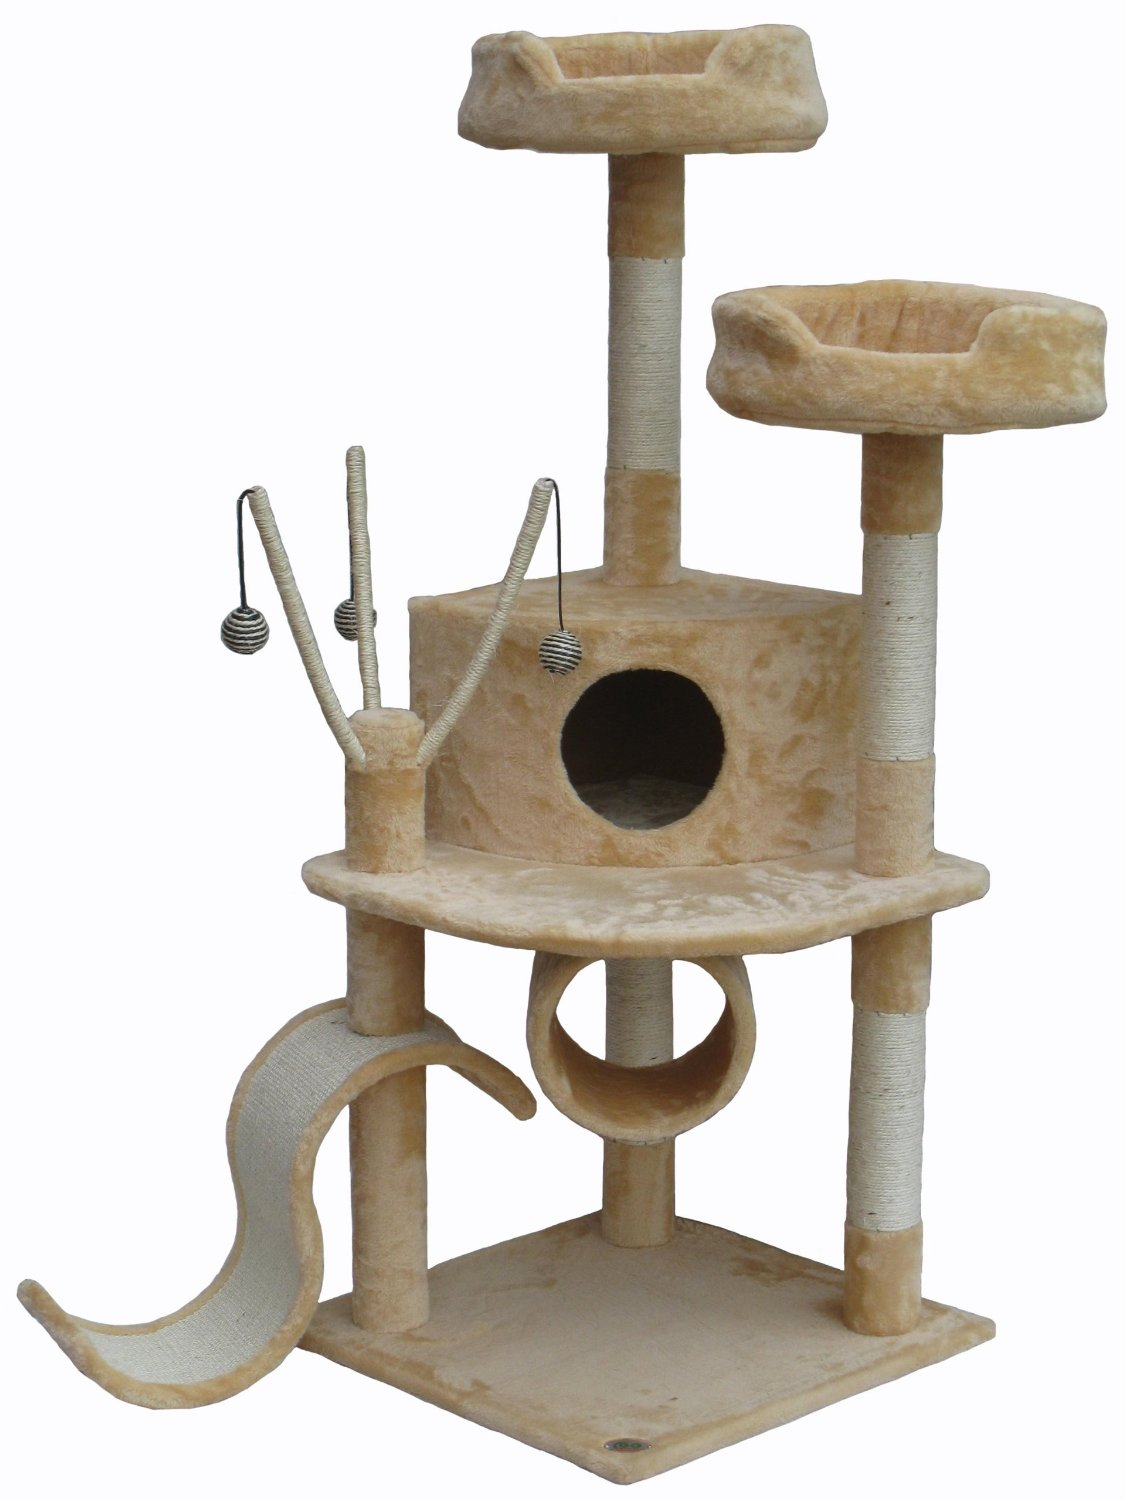 Go Pet Club Cat Tree Furniture 55 in. High - Pie Loft Beige